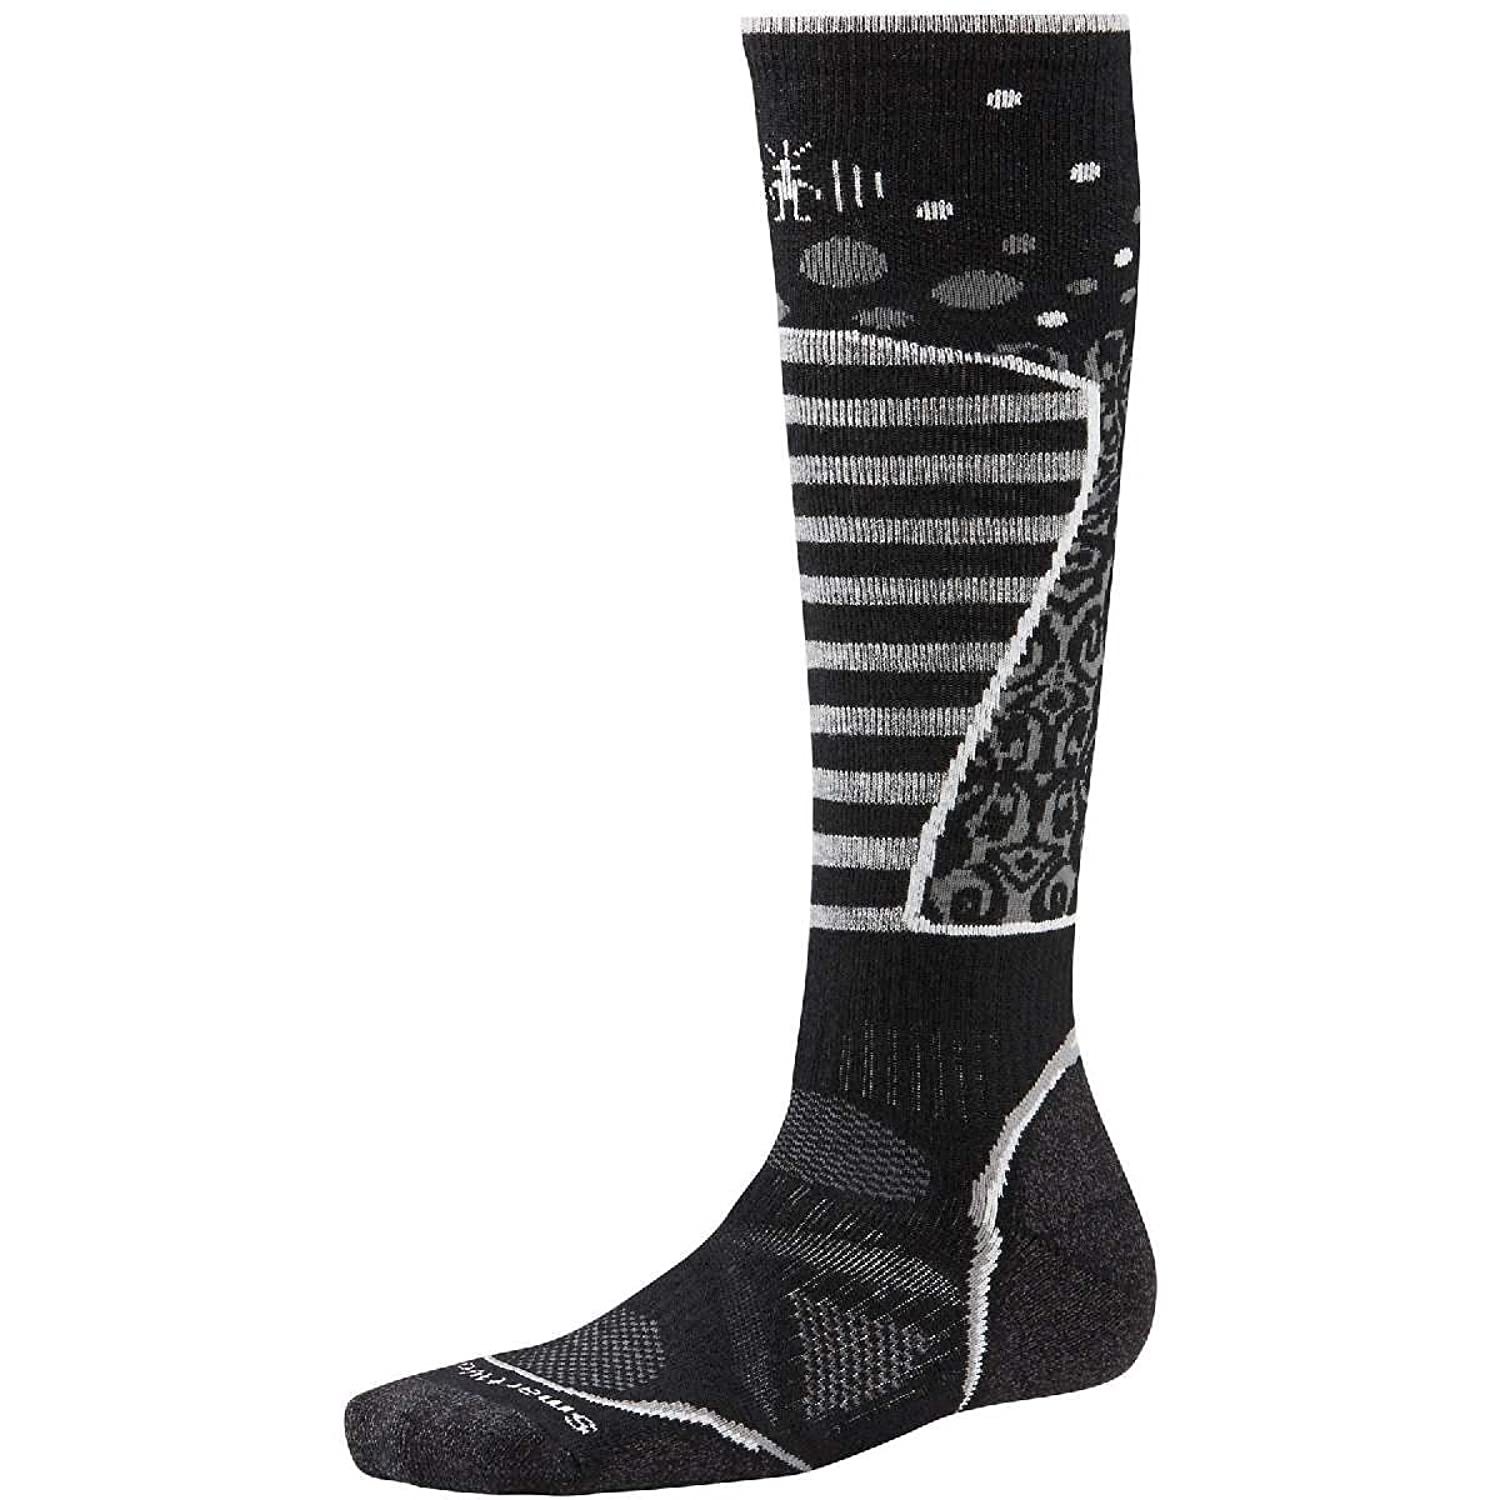 SmartWool Womens PhD Medium Pattern Socks спортивные носки smartwool phd sport sw044 sw054 sw073